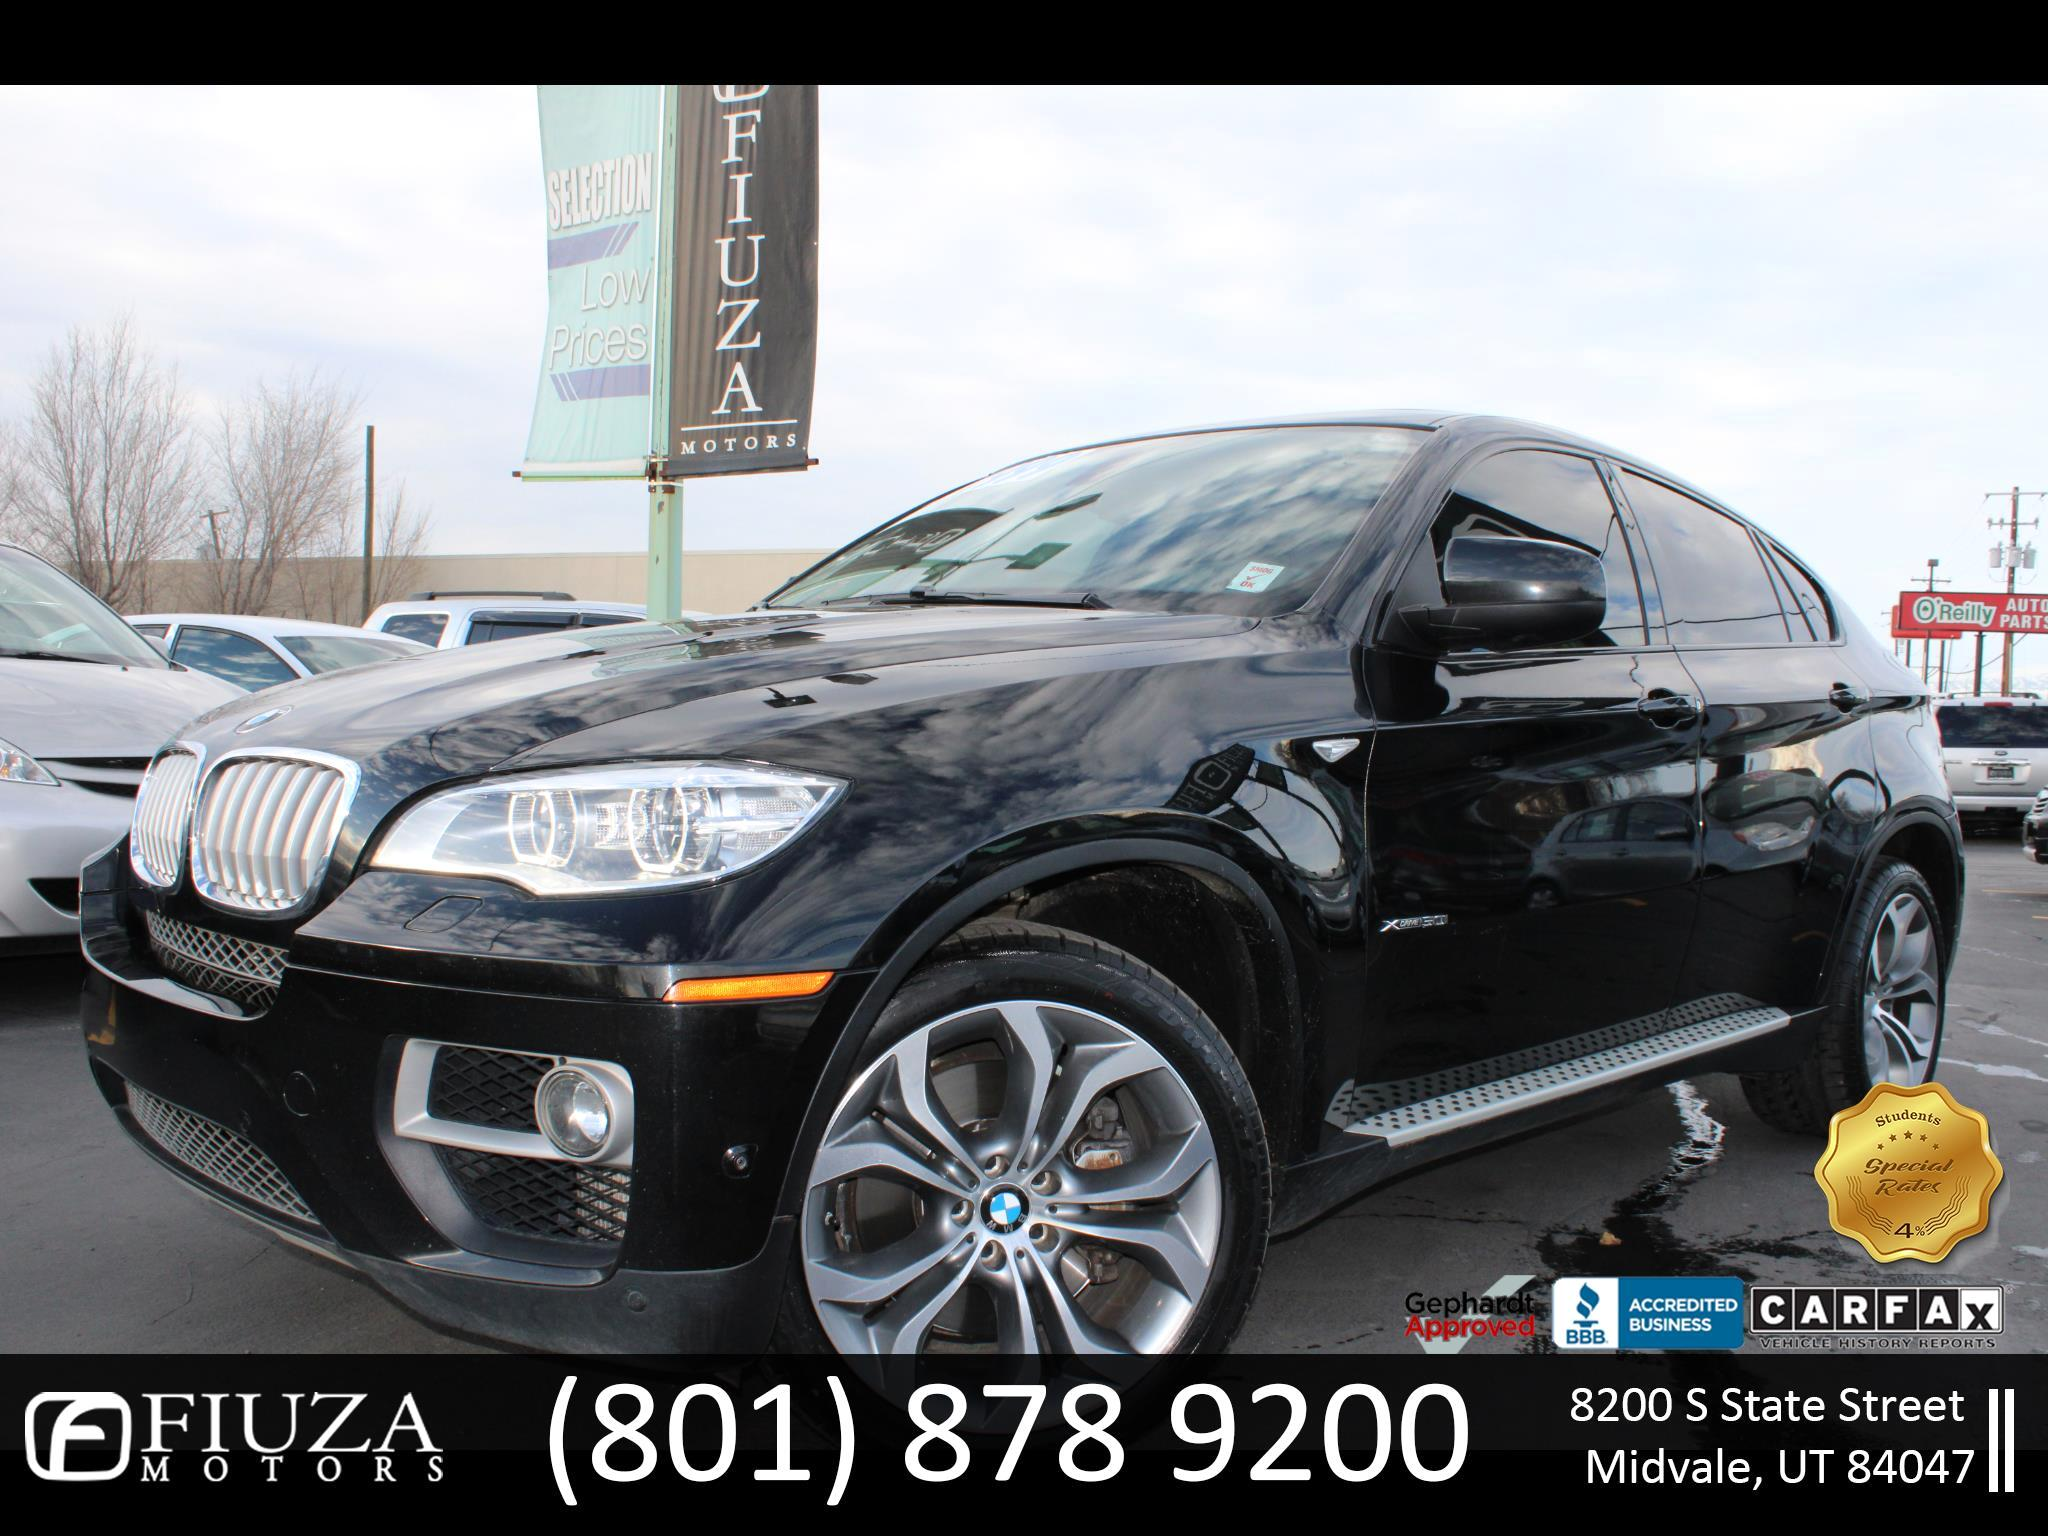 BMW X6 AWD 4dr xDrive50i 2014